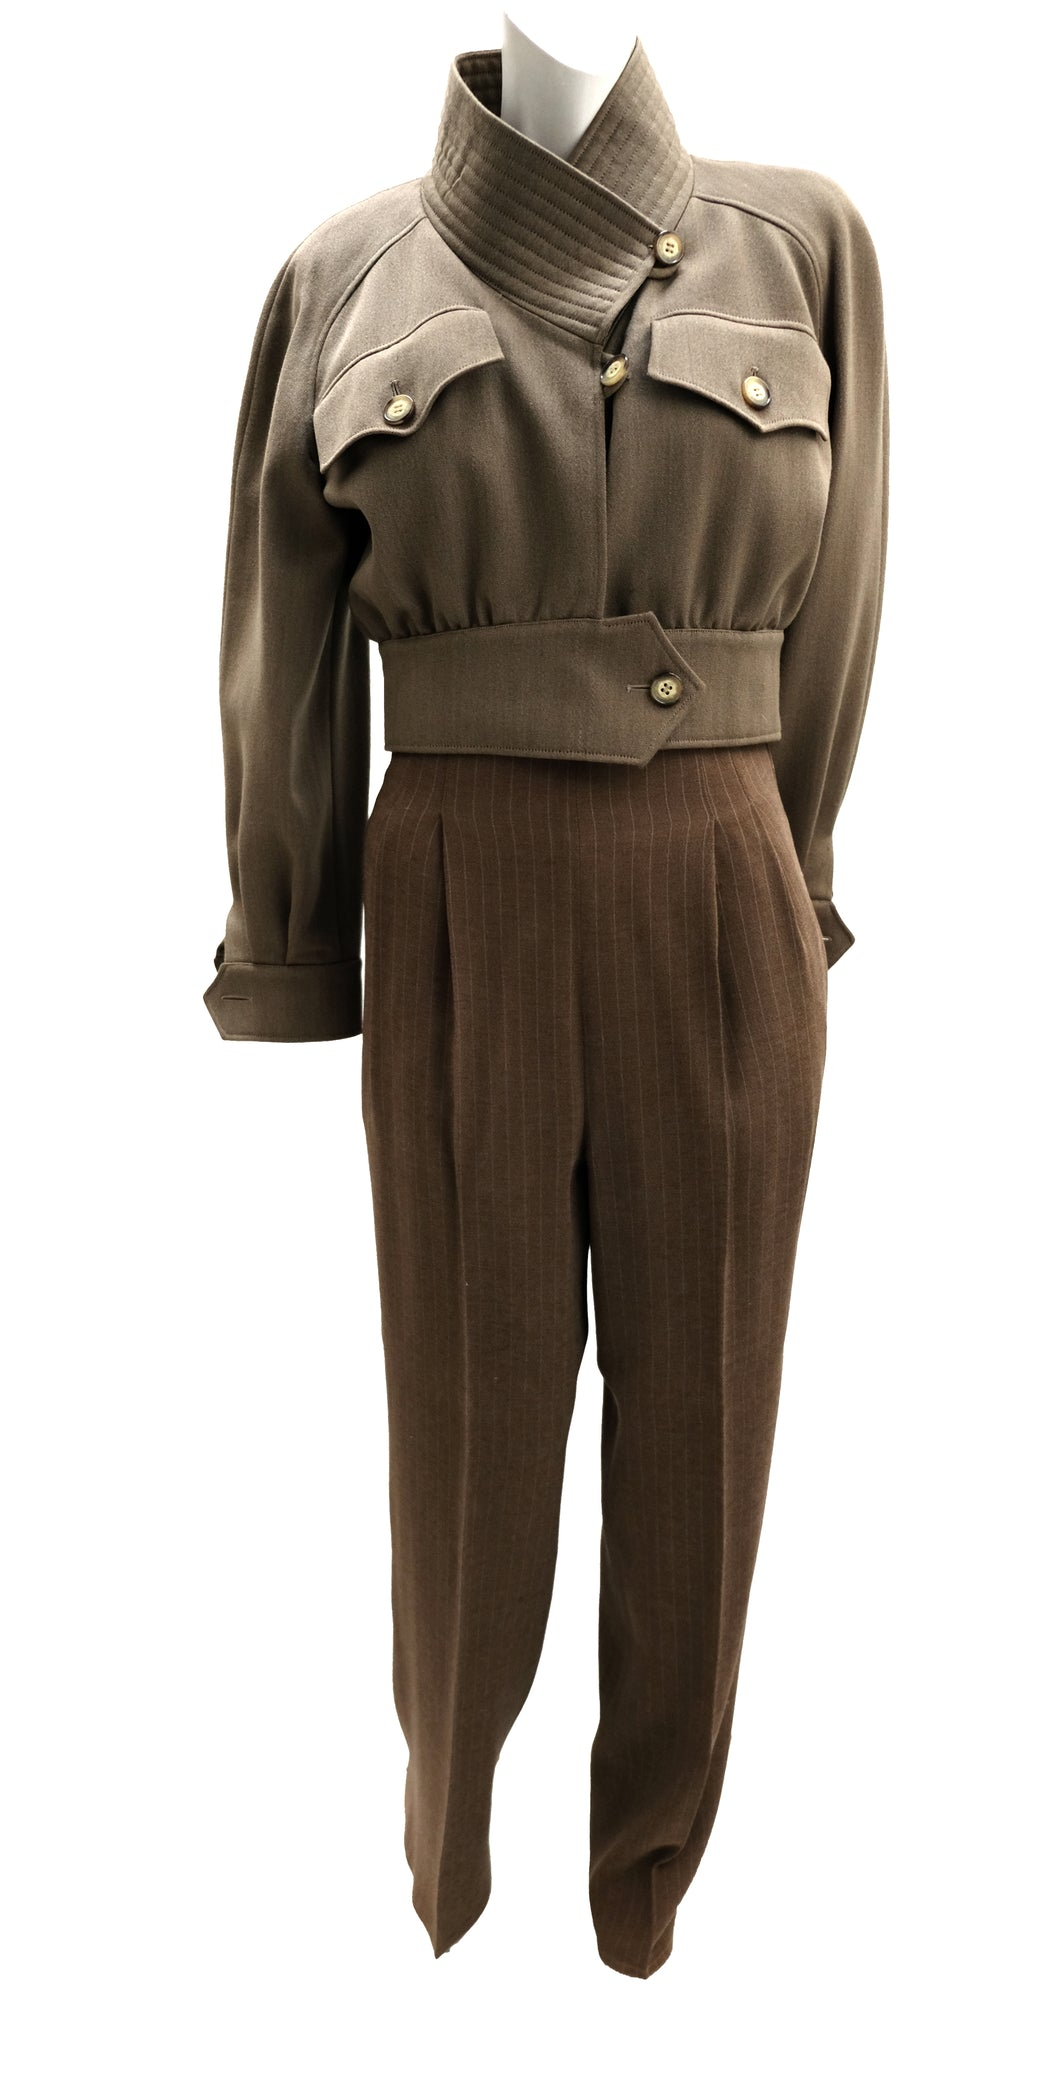 Christian Lacroix Vintage Military Trouser Suit, UK10